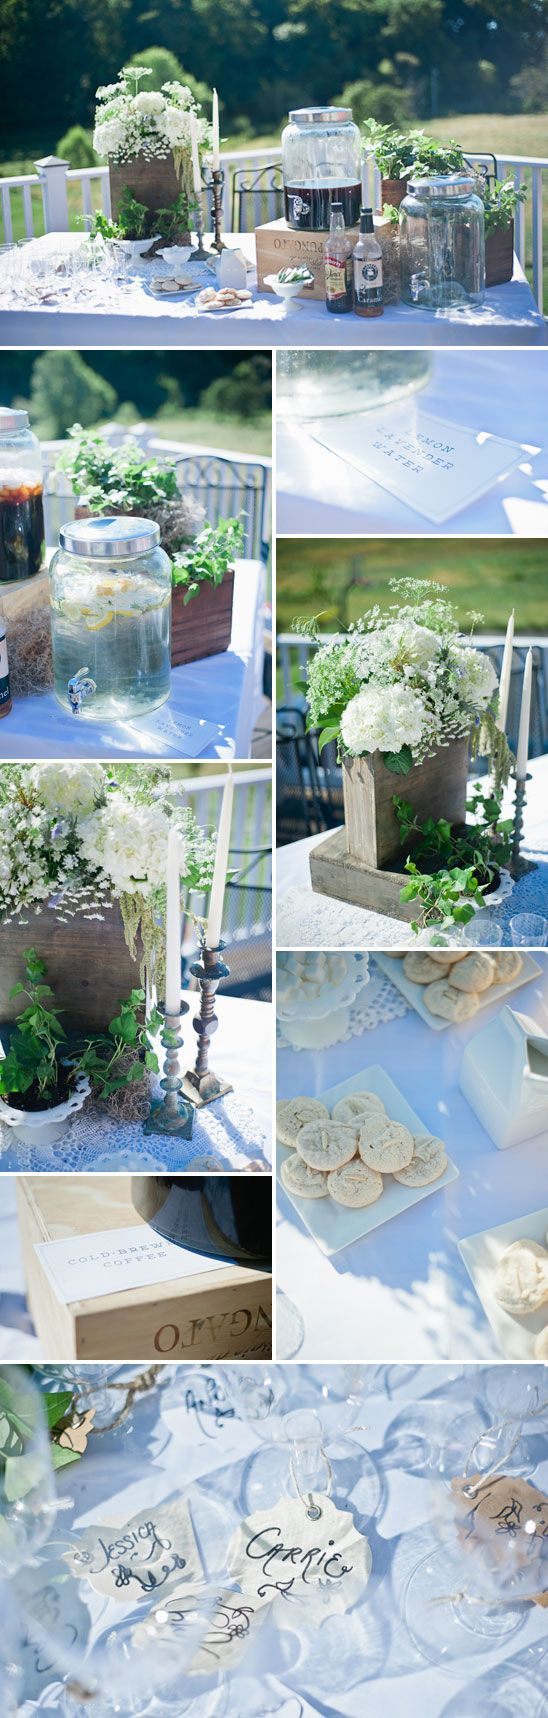 Lovely French Garden Themed Baby Shower - On to Baby